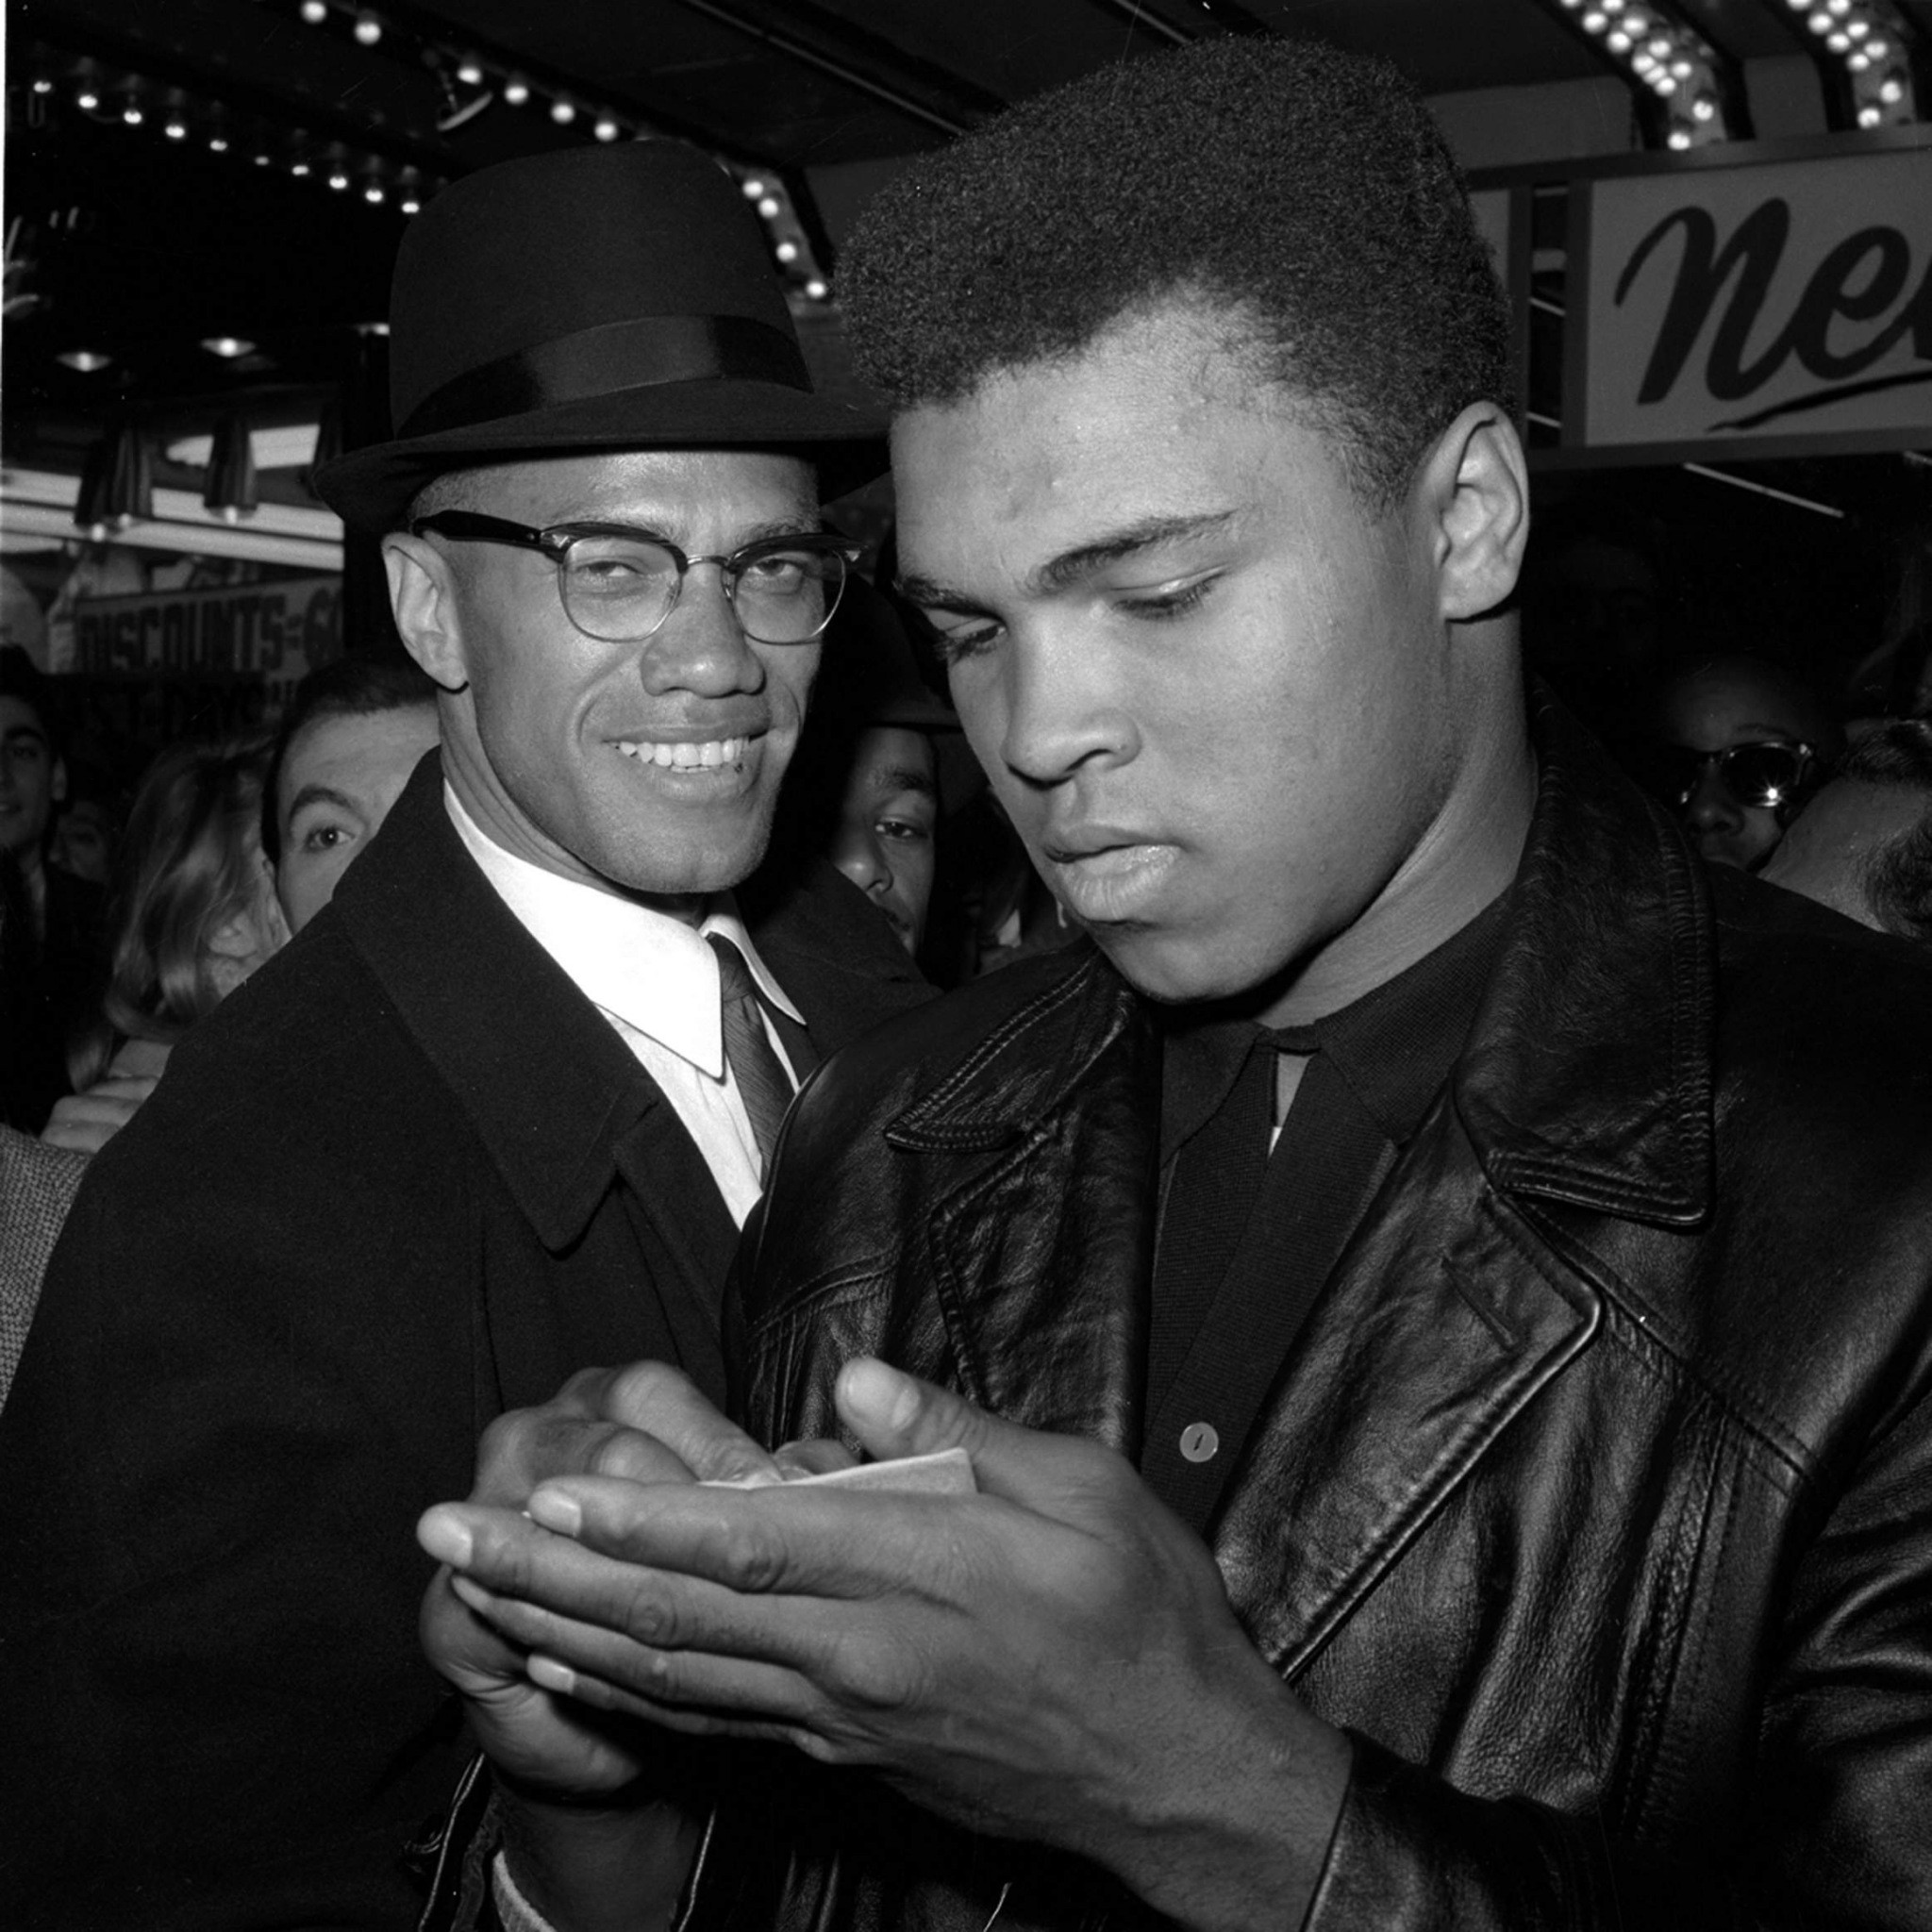 2048x2048 1356094324. 52171319-e1392996072591. 72385184.  the_murder_malcolm_x_45_years_later_a_legacy_ignored_and_forgotten